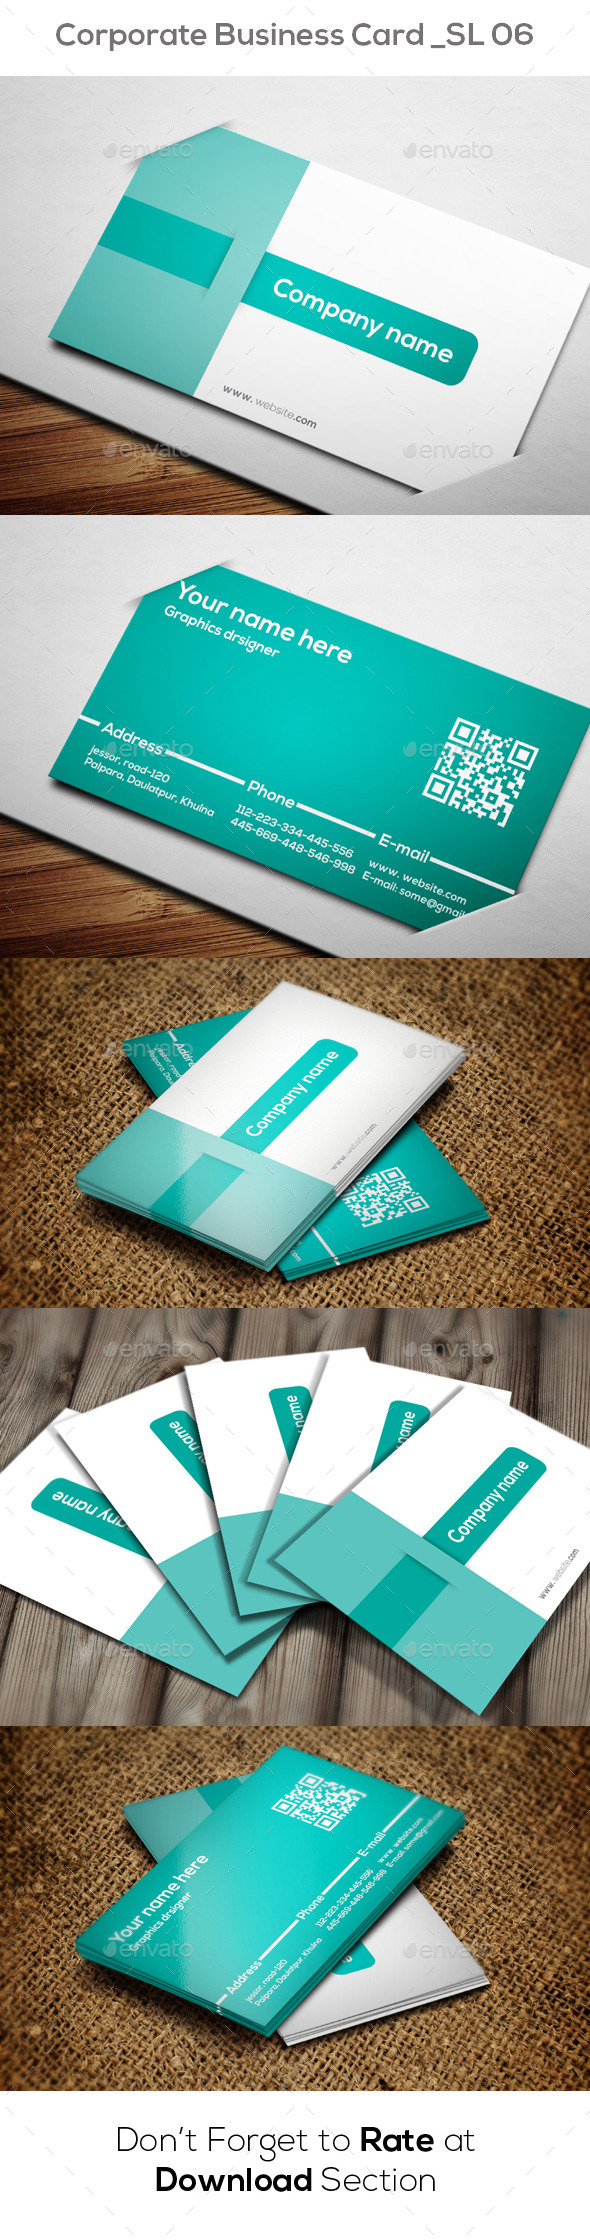 Creative Business Card SL 06